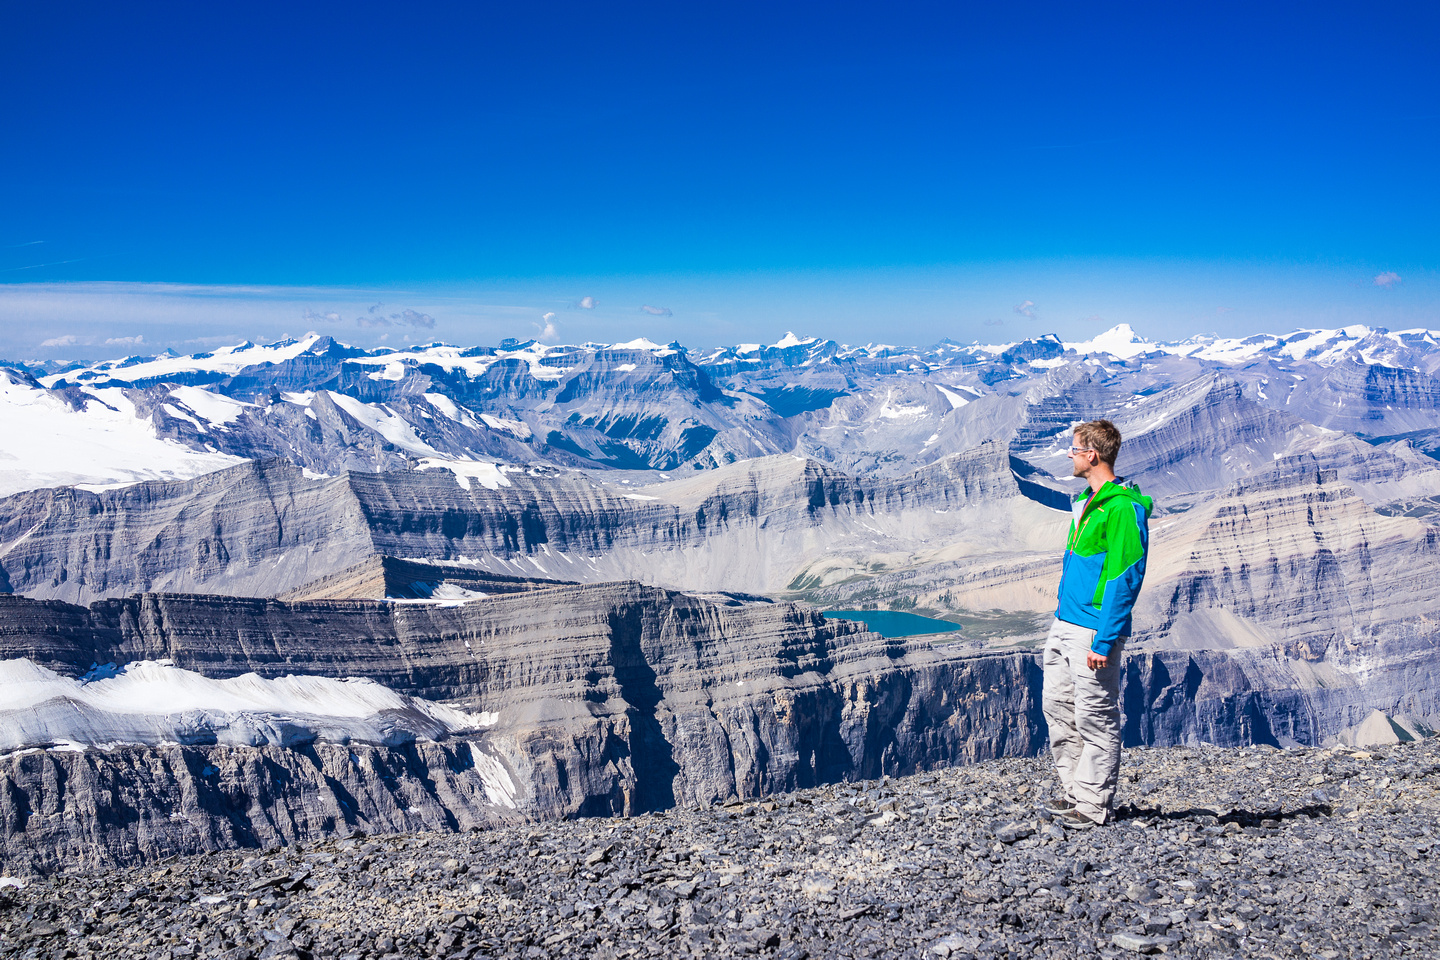 Vern on the summit of Mount Cline with Mount Columbia and many other giant peaks in the back ground.